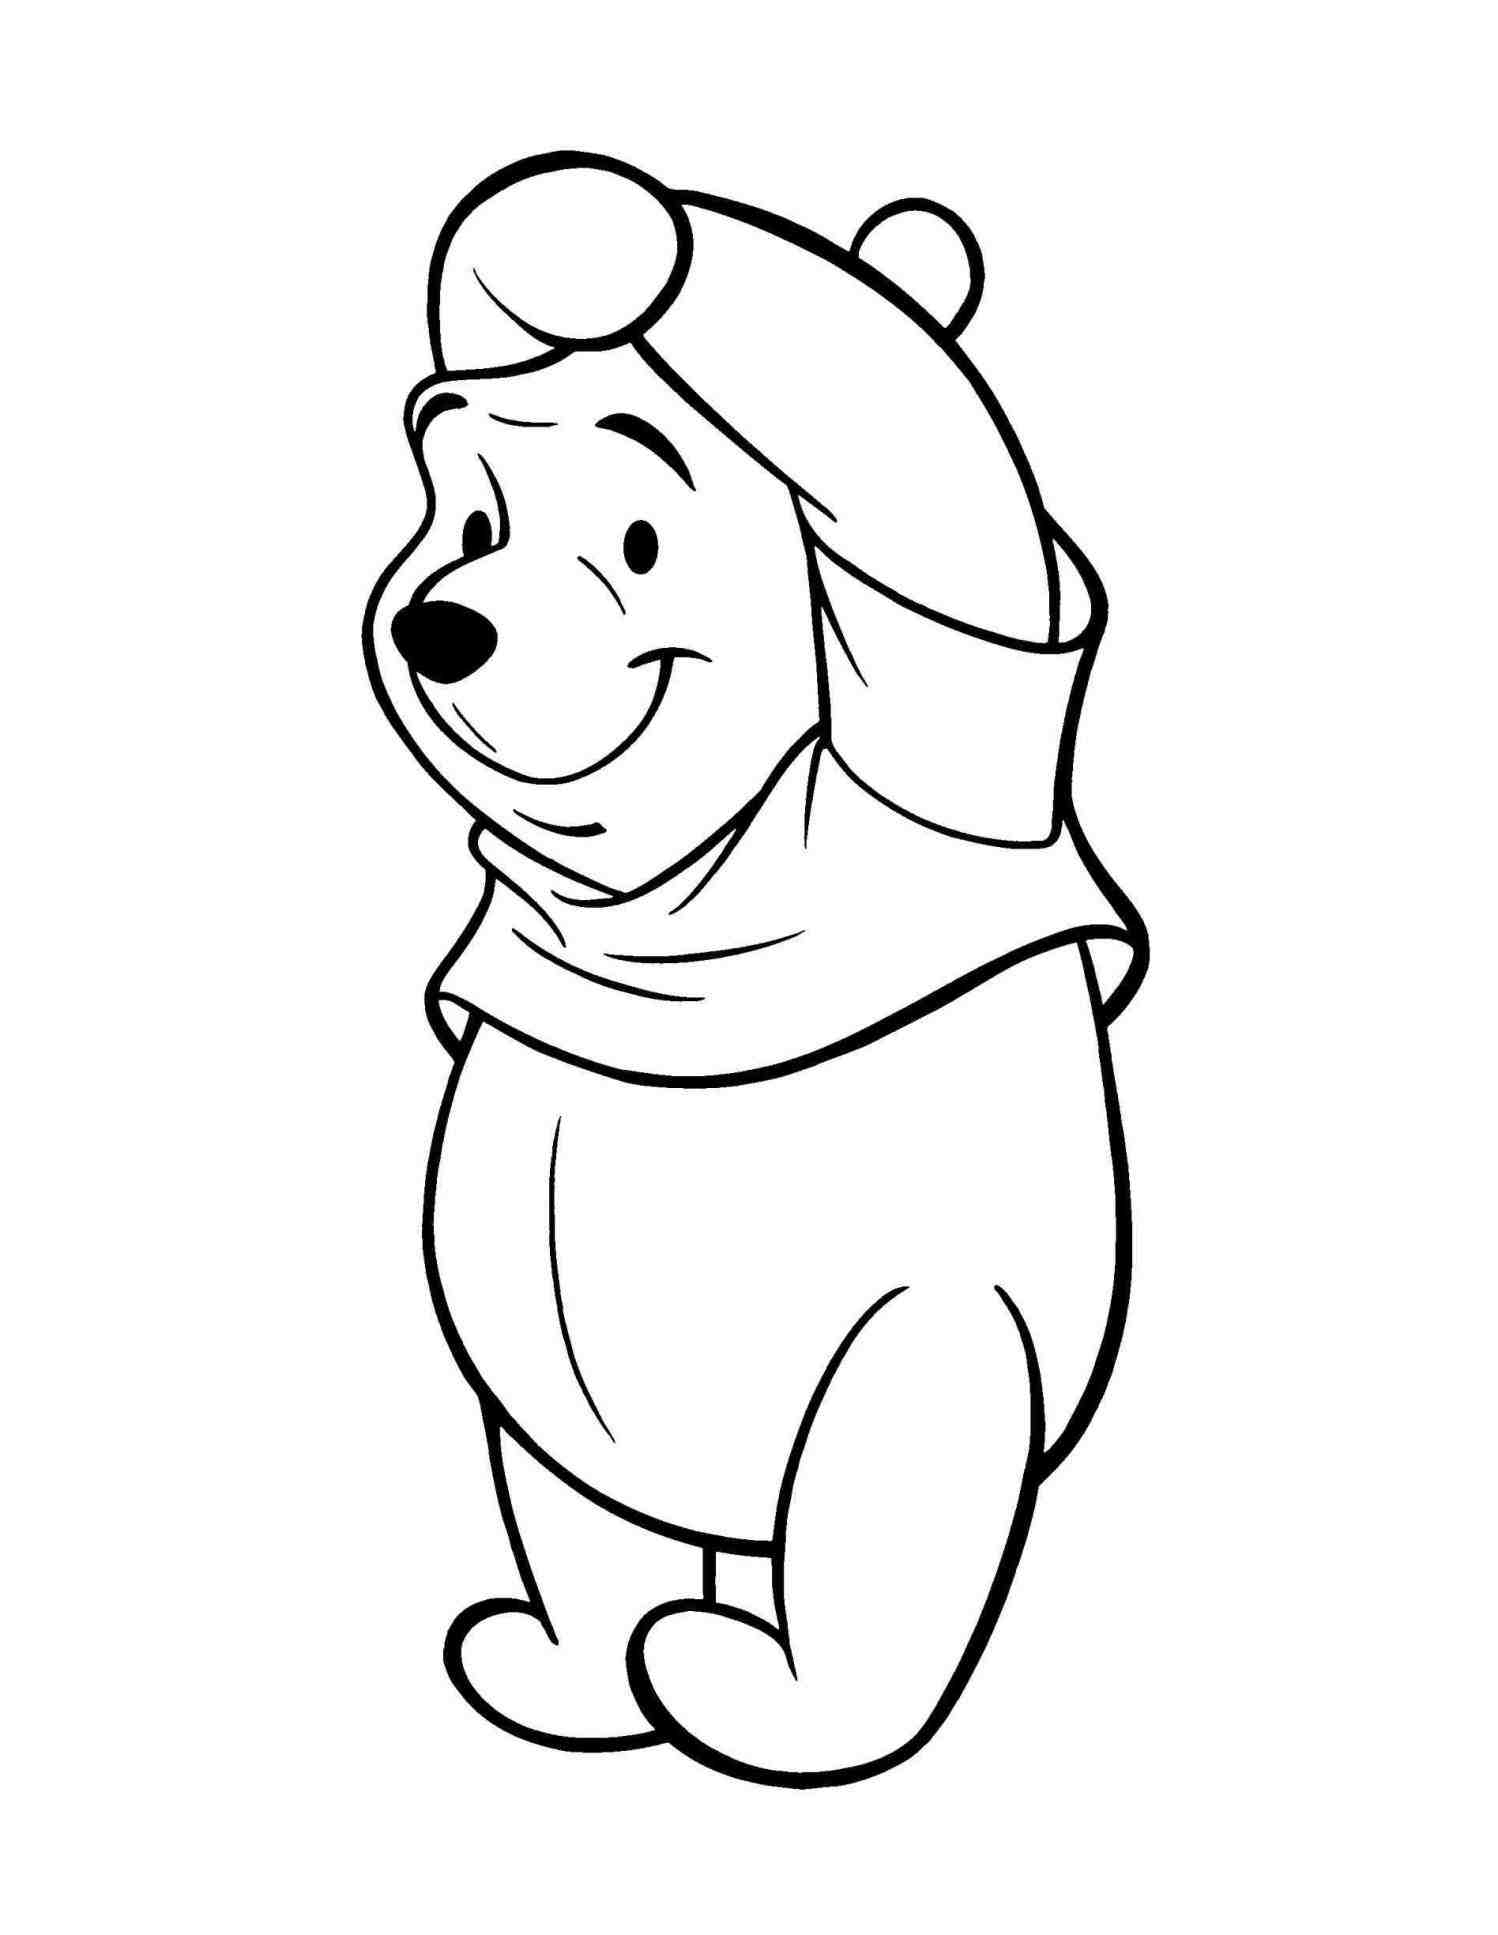 disney drawing characters easy disney characters drawing free download on clipartmag disney drawing characters